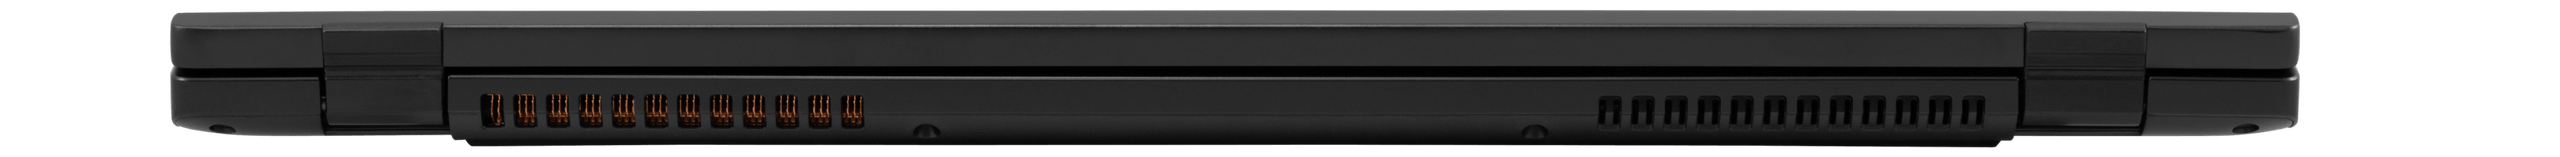 Rear view of the Darter Pro laptop folded shut, showing off the thinness of the chassis.